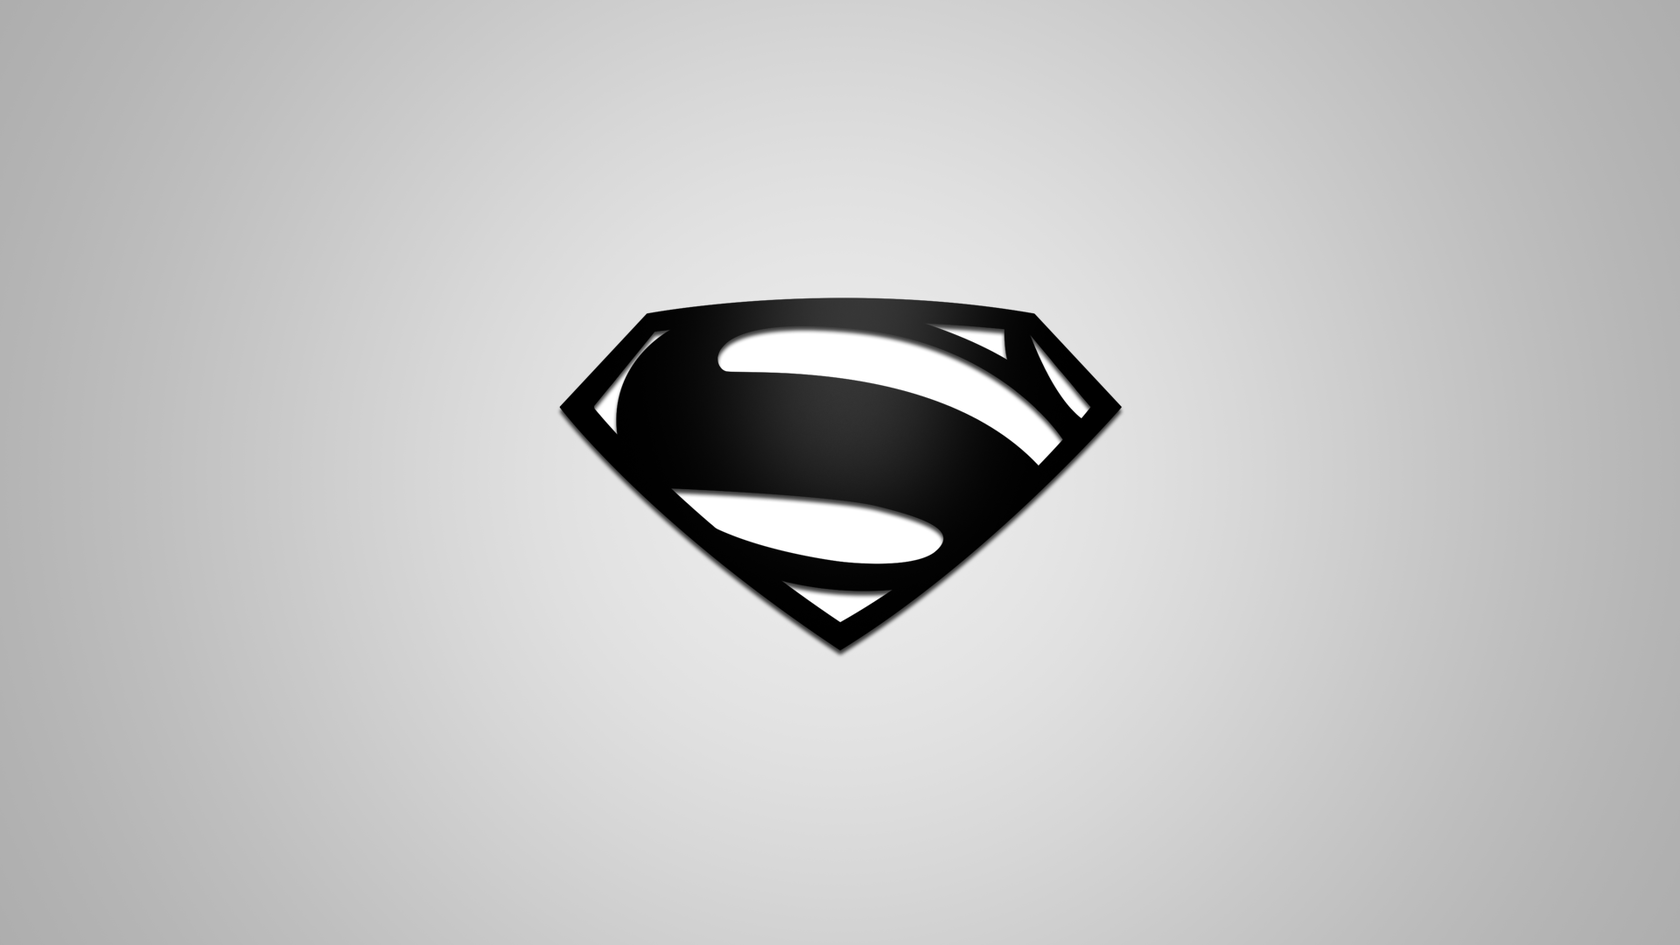 76+] New Superman Logo Wallpaper on WallpaperSafari.